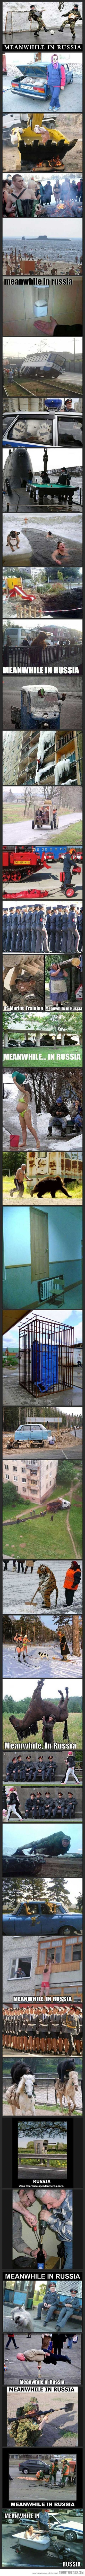 'Meanwhile in Russia' compilation… this made me laugh so hard. the chair below the door lmao